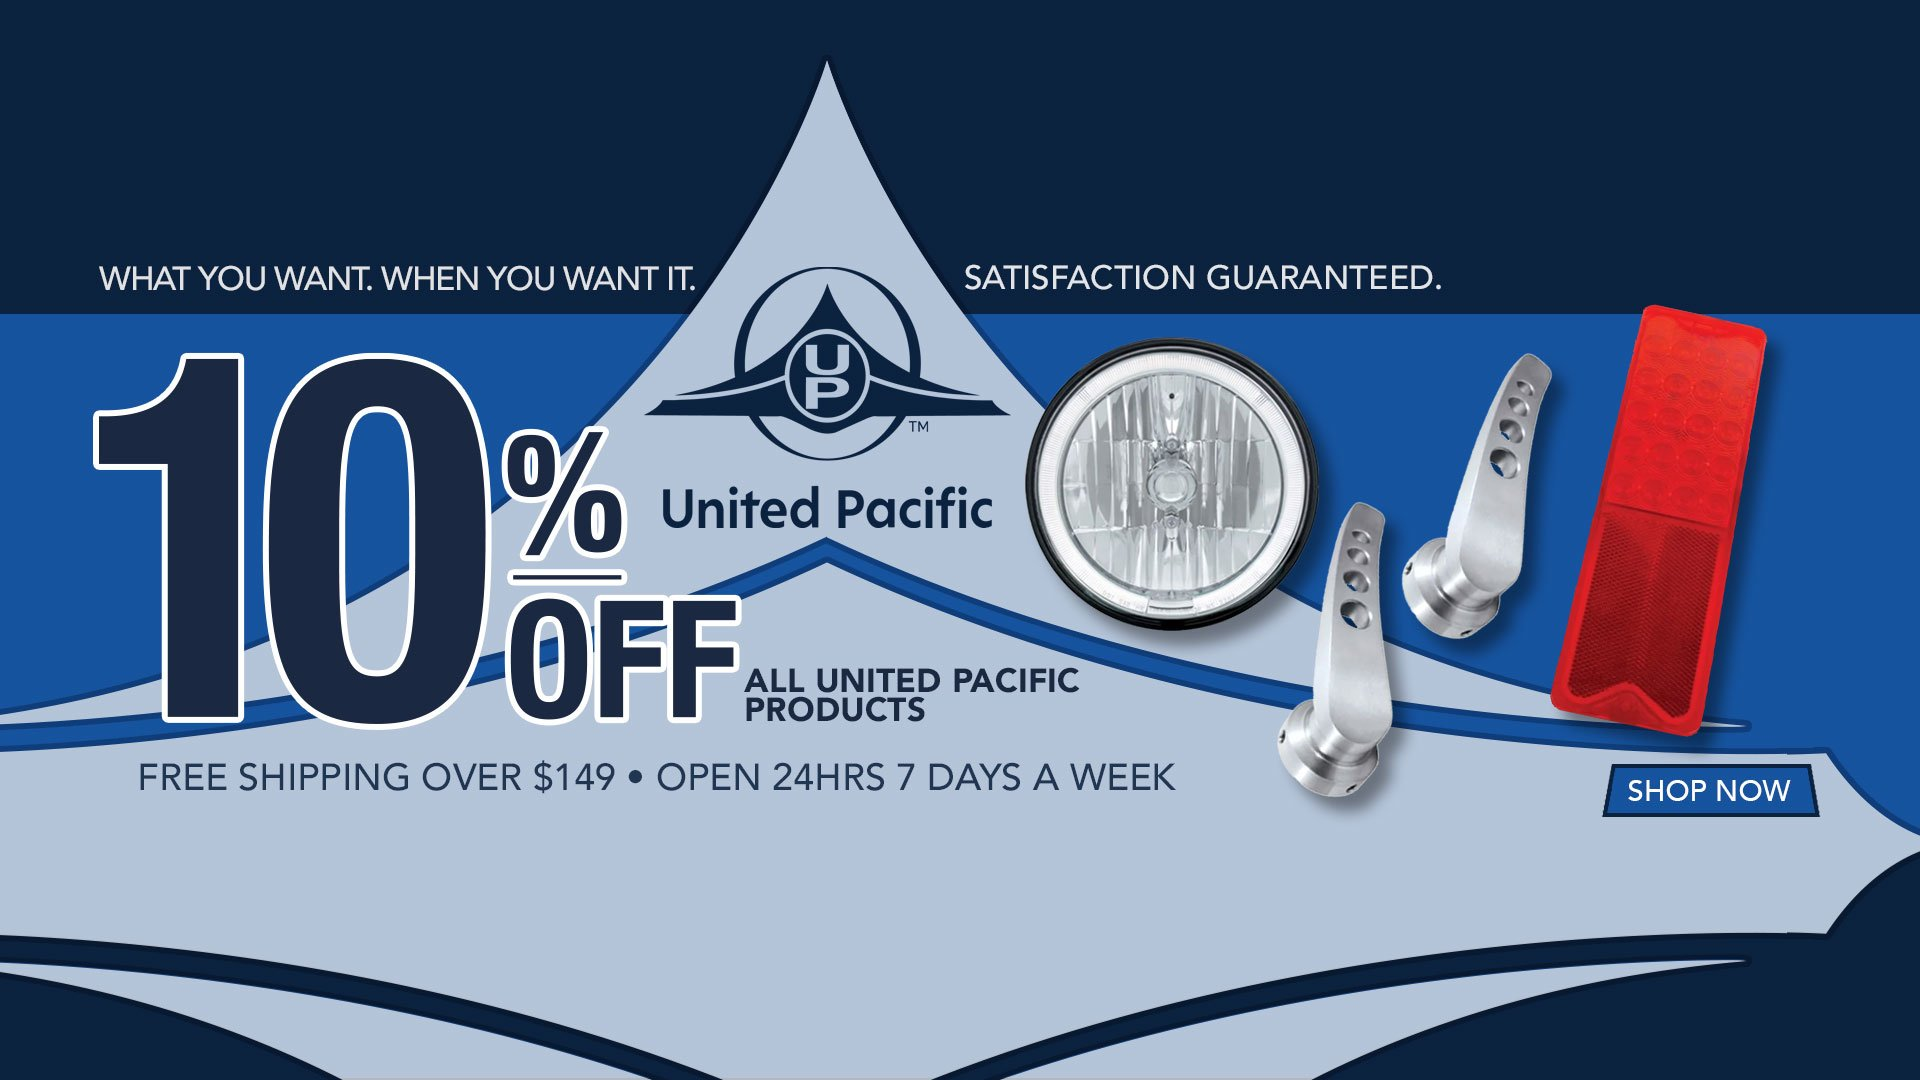 Save 10% on All United Pacific Products